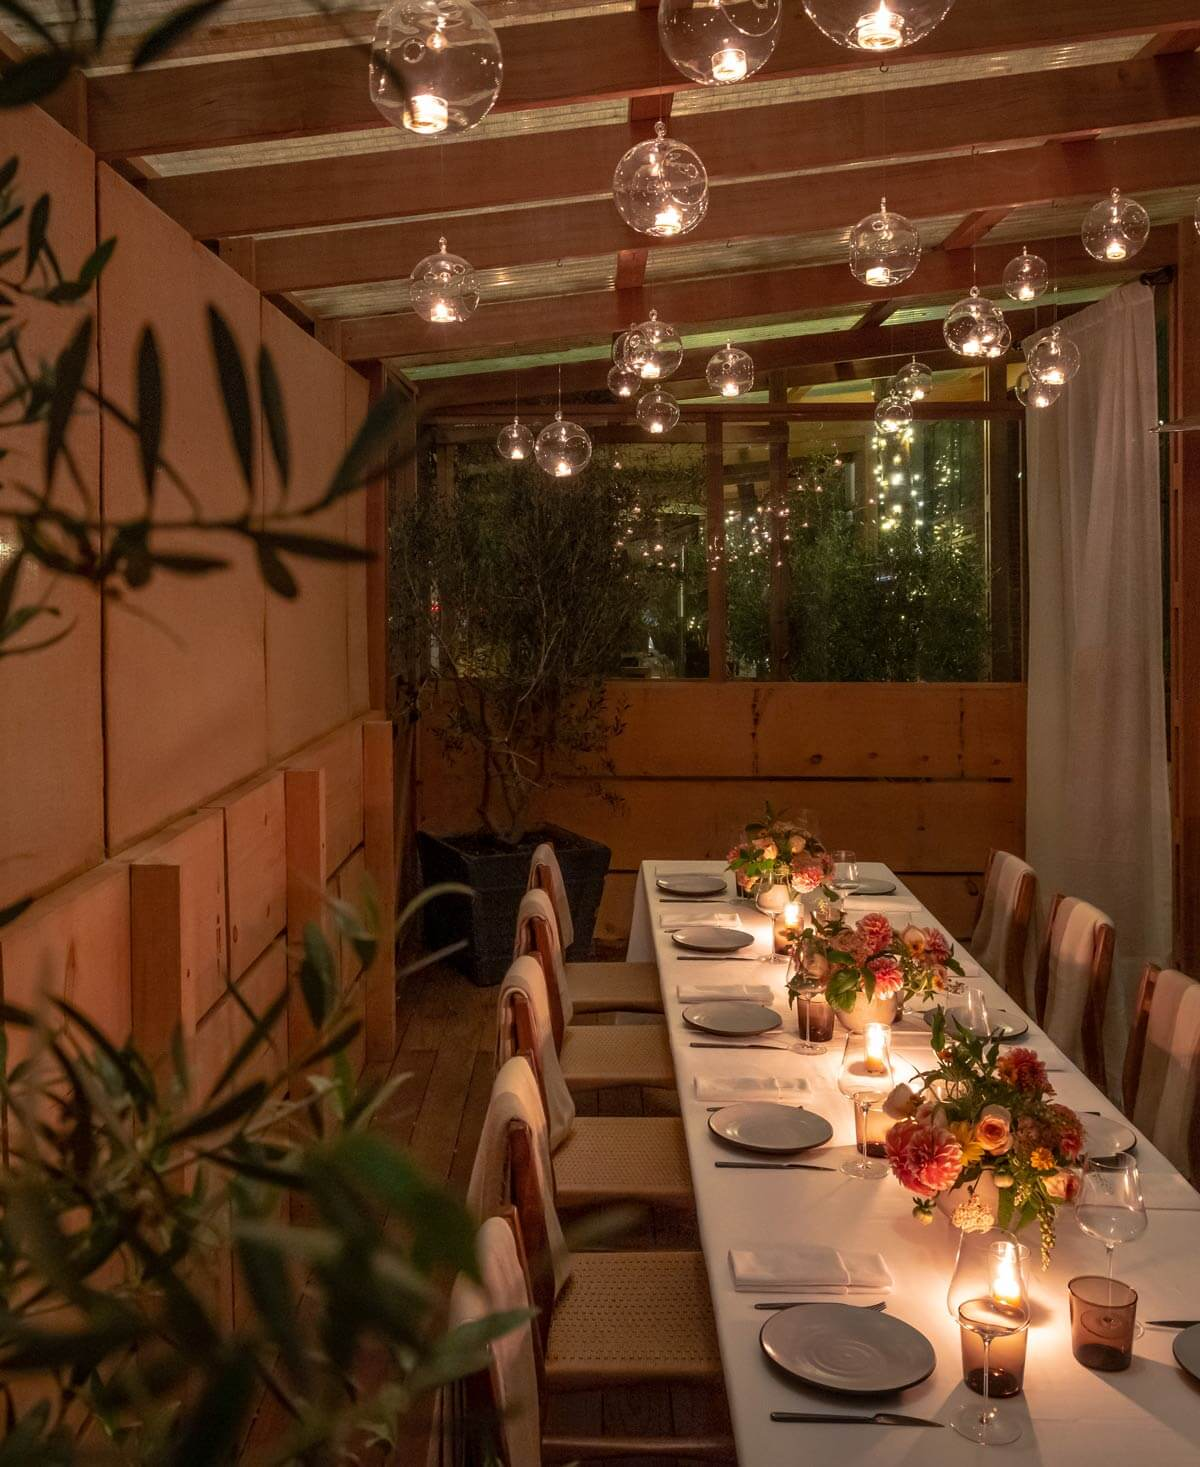 A set table in the outdoor dining space at night